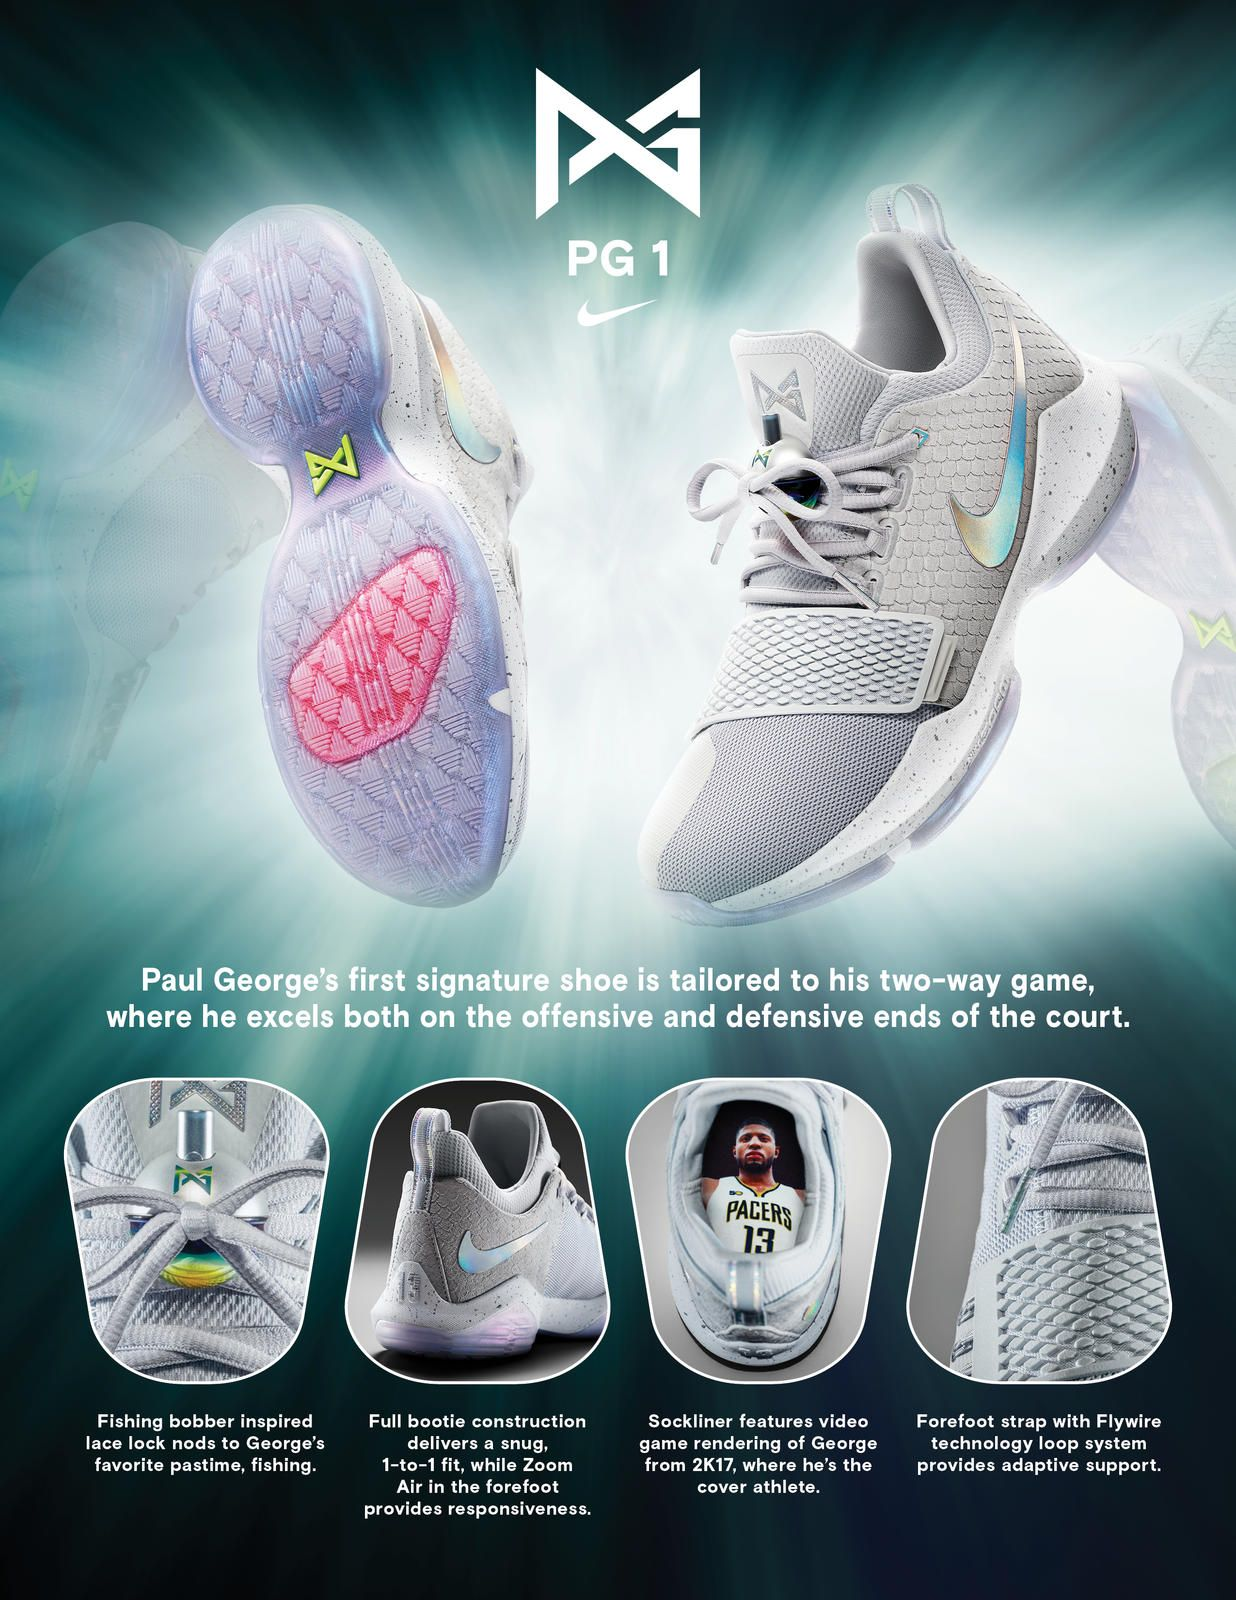 d223bee6d213 Nike News - PG1 Reflects Paul George s Versatility on Both Sides of the  Court